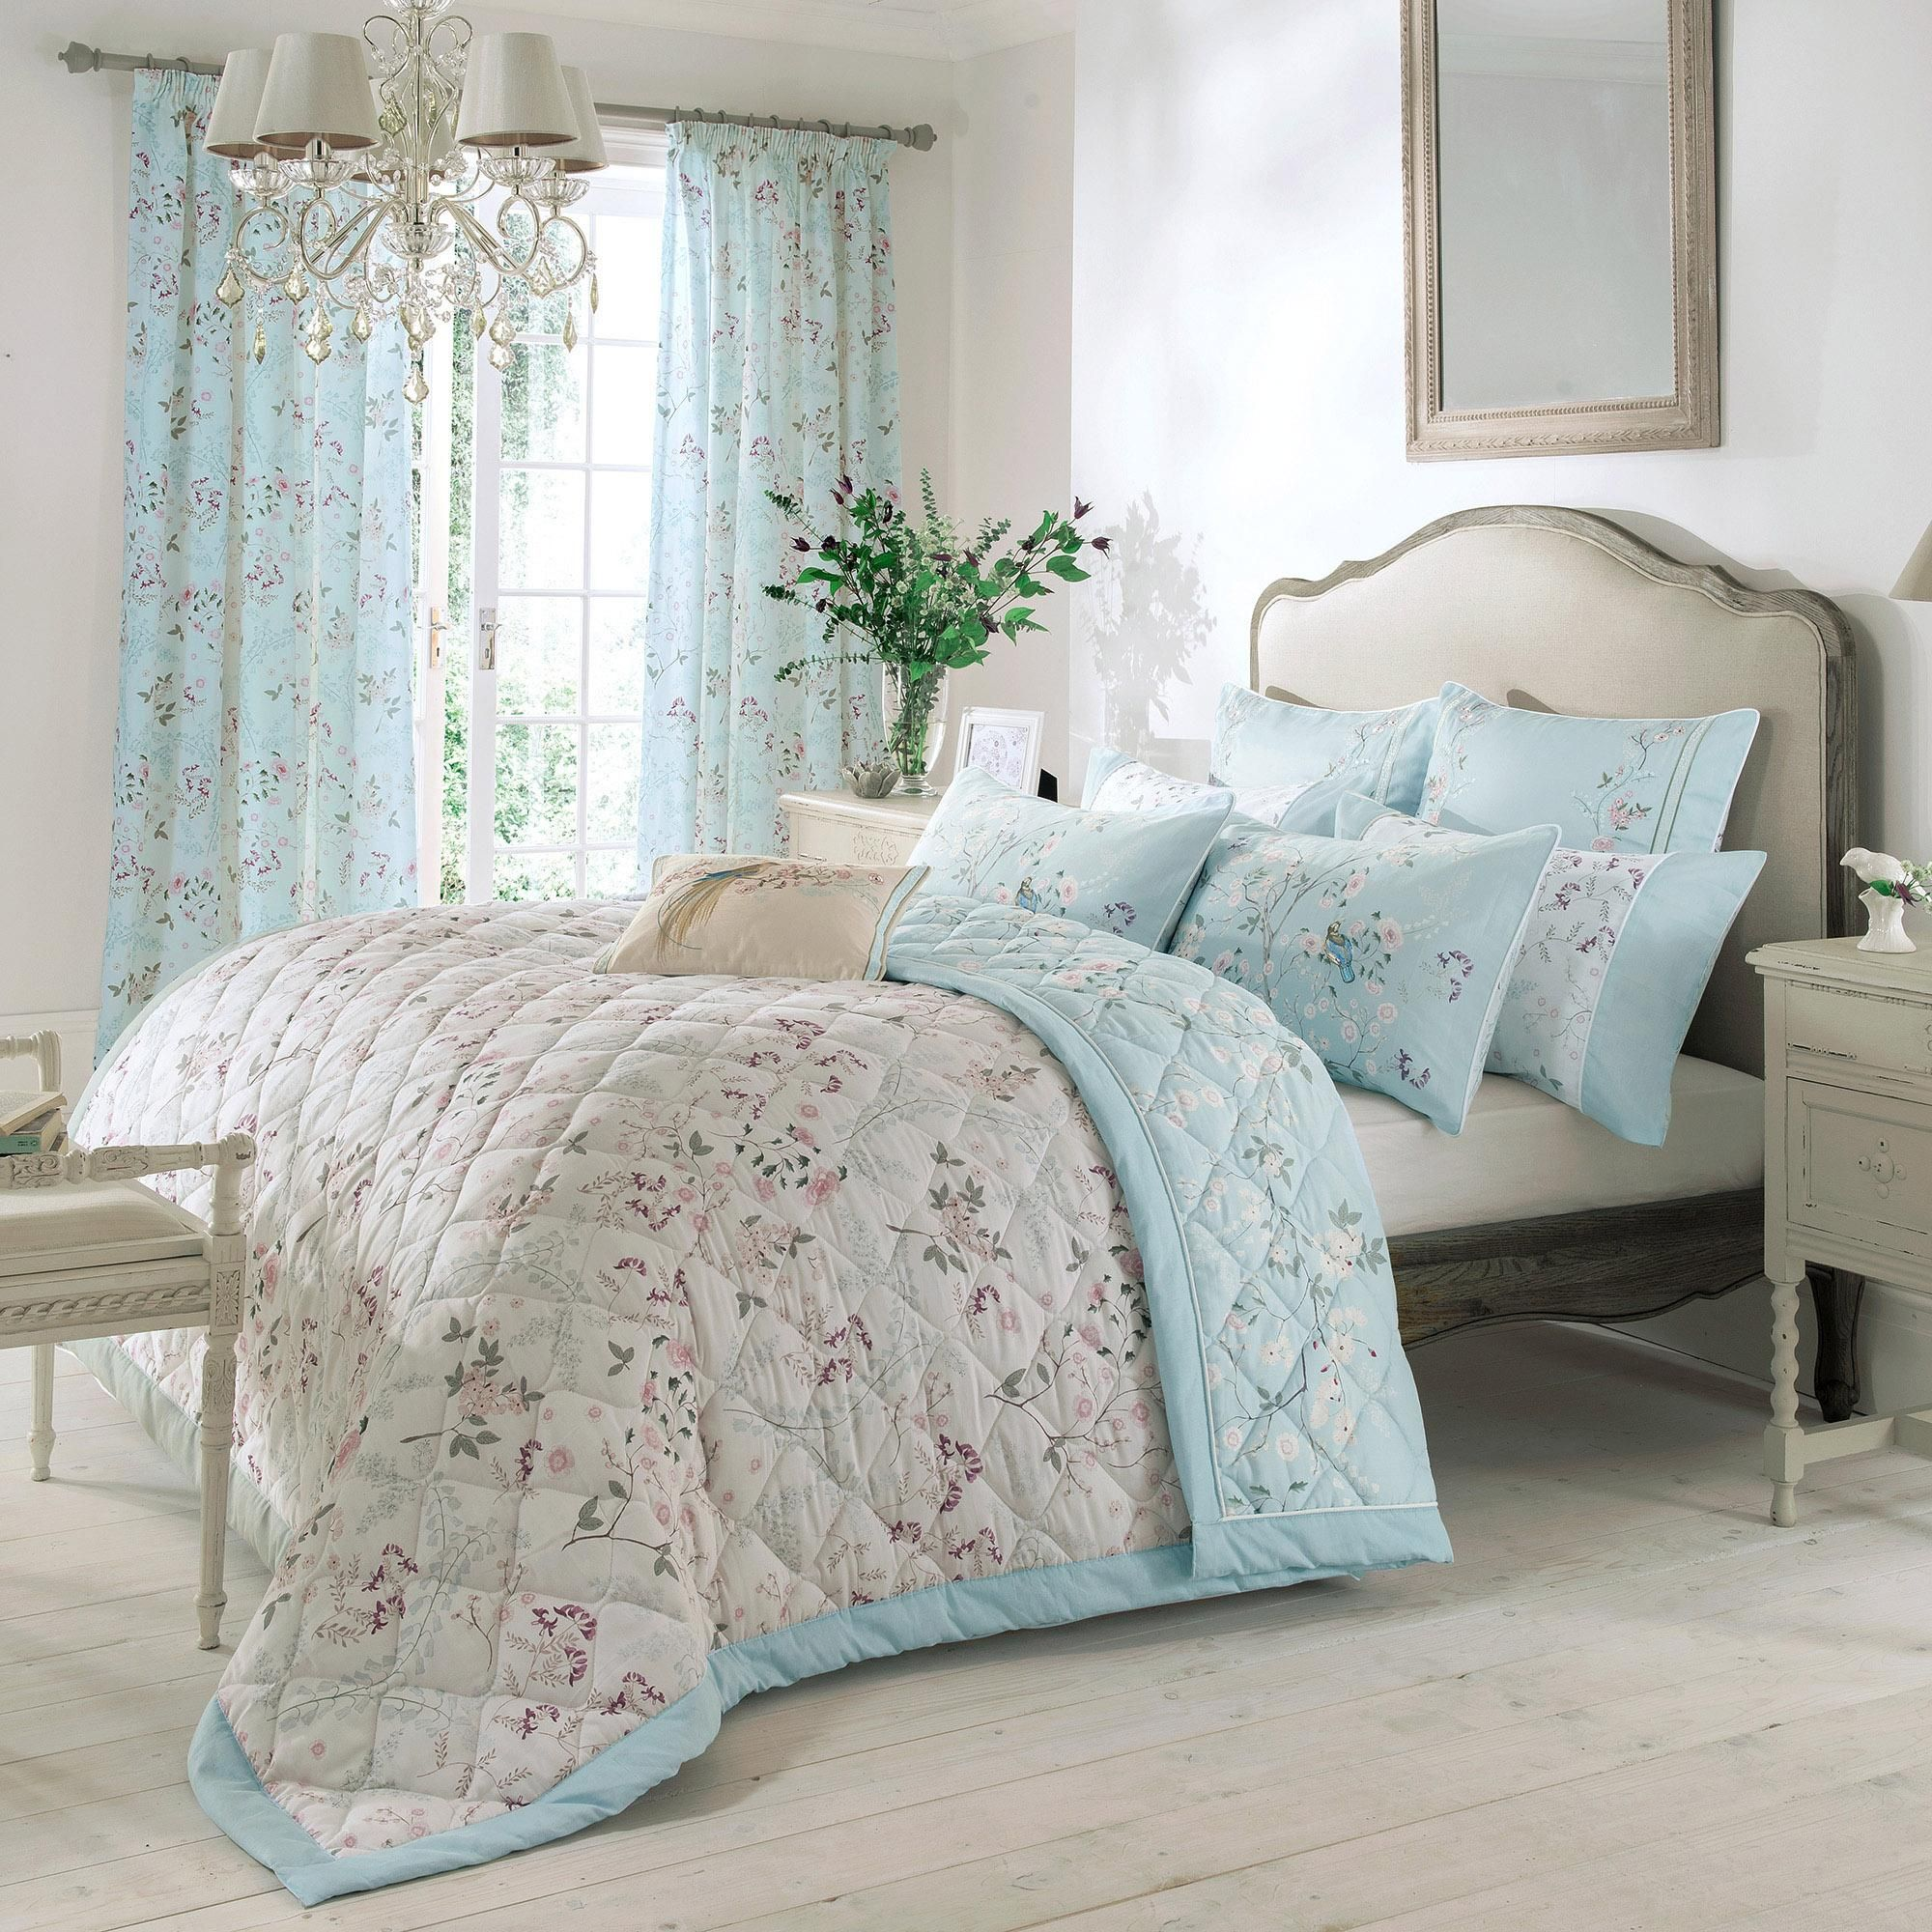 Bedspreads & Bed Throws Bed Runners Dunelm